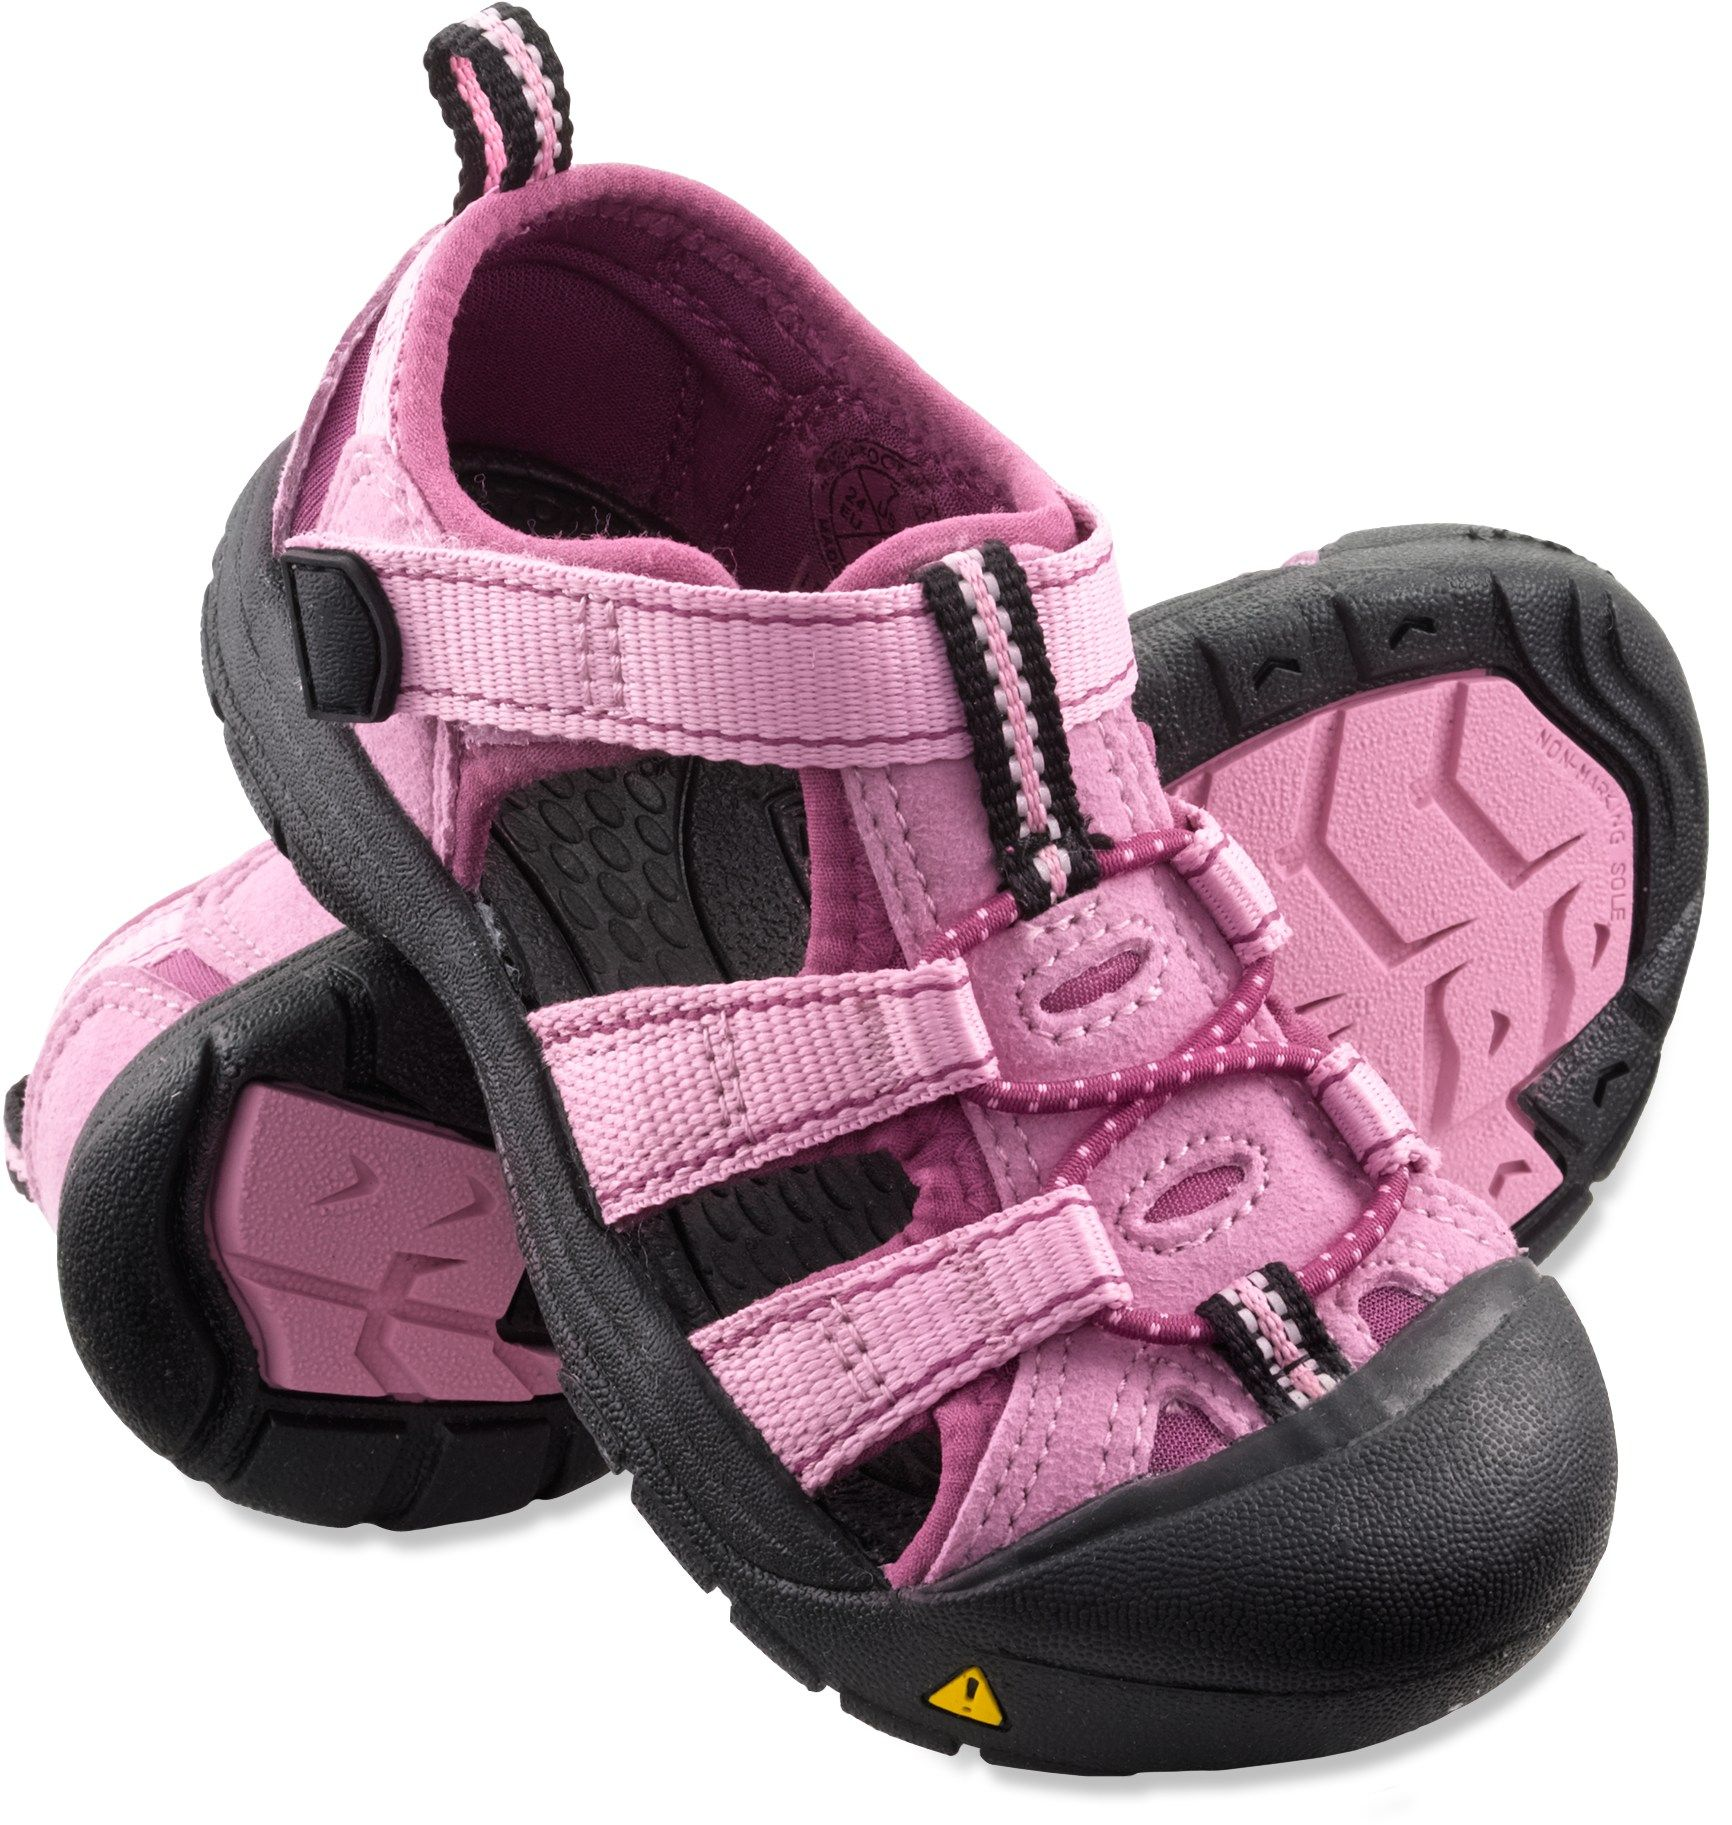 Best water shoes for kids! My daughter has narrow feet and these ...